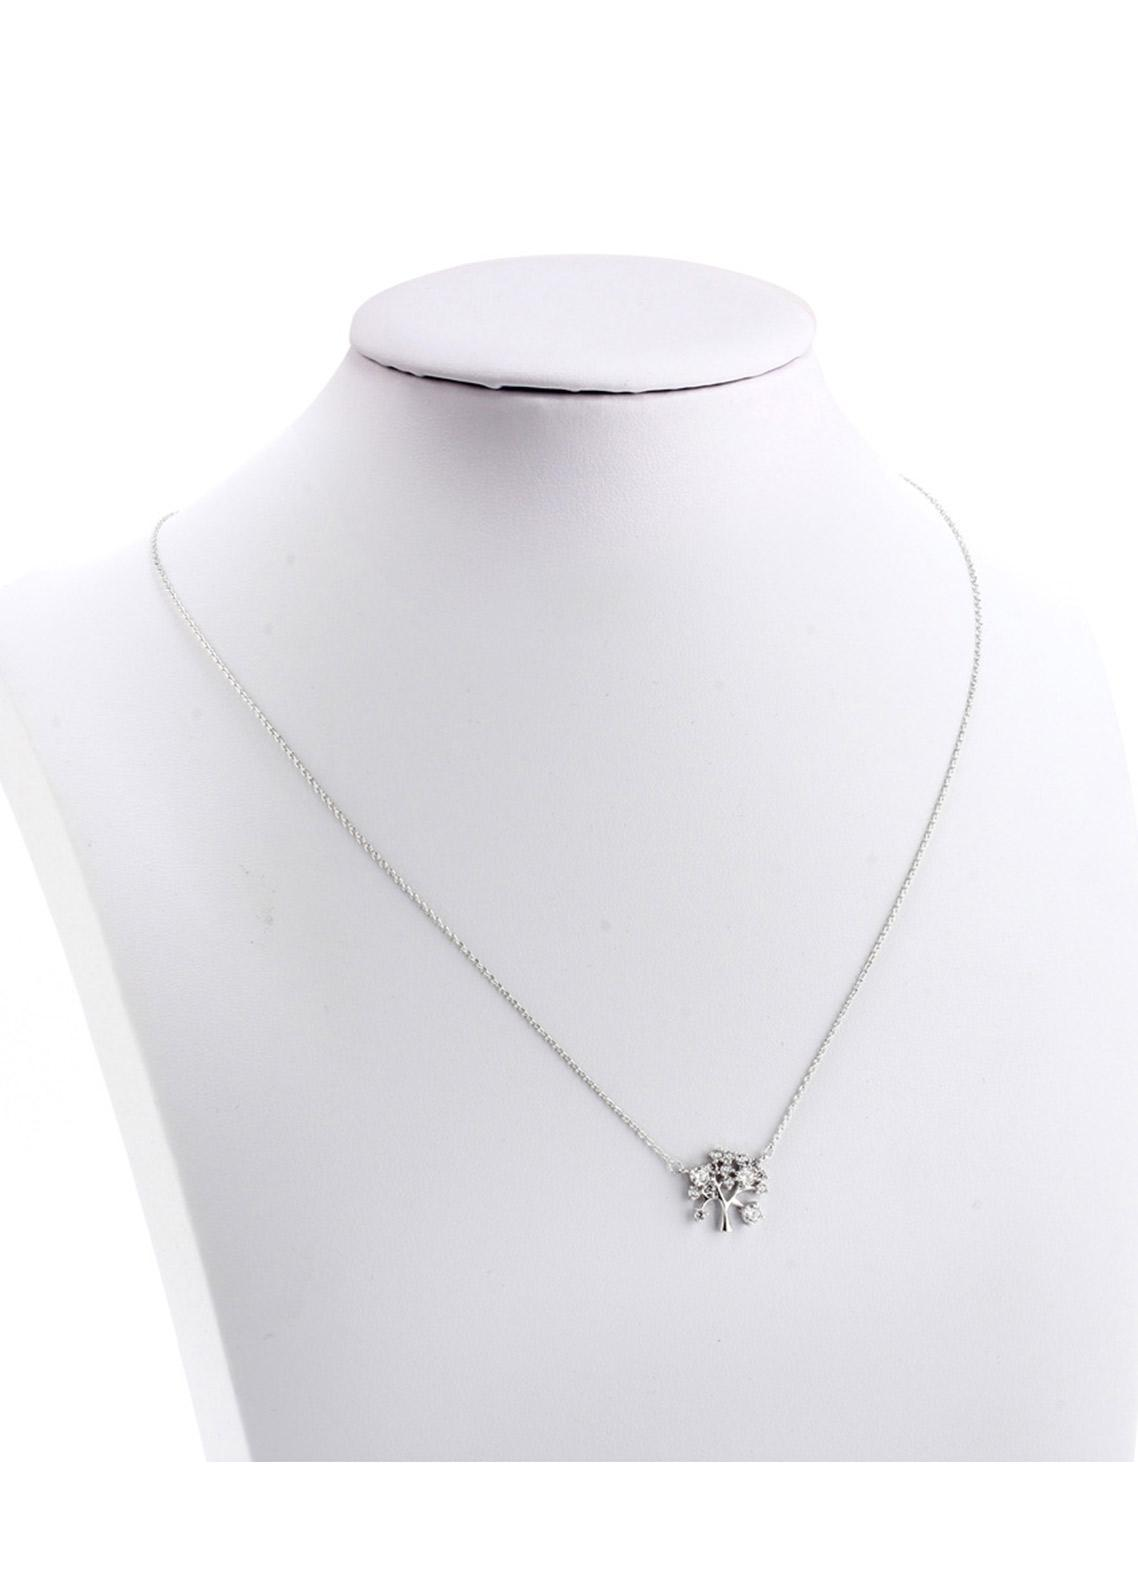 Anna Grace London by Silk Avenue Silver Plated Crystal Plated Tree Necklace AGN0044 - Ladies Jewellery